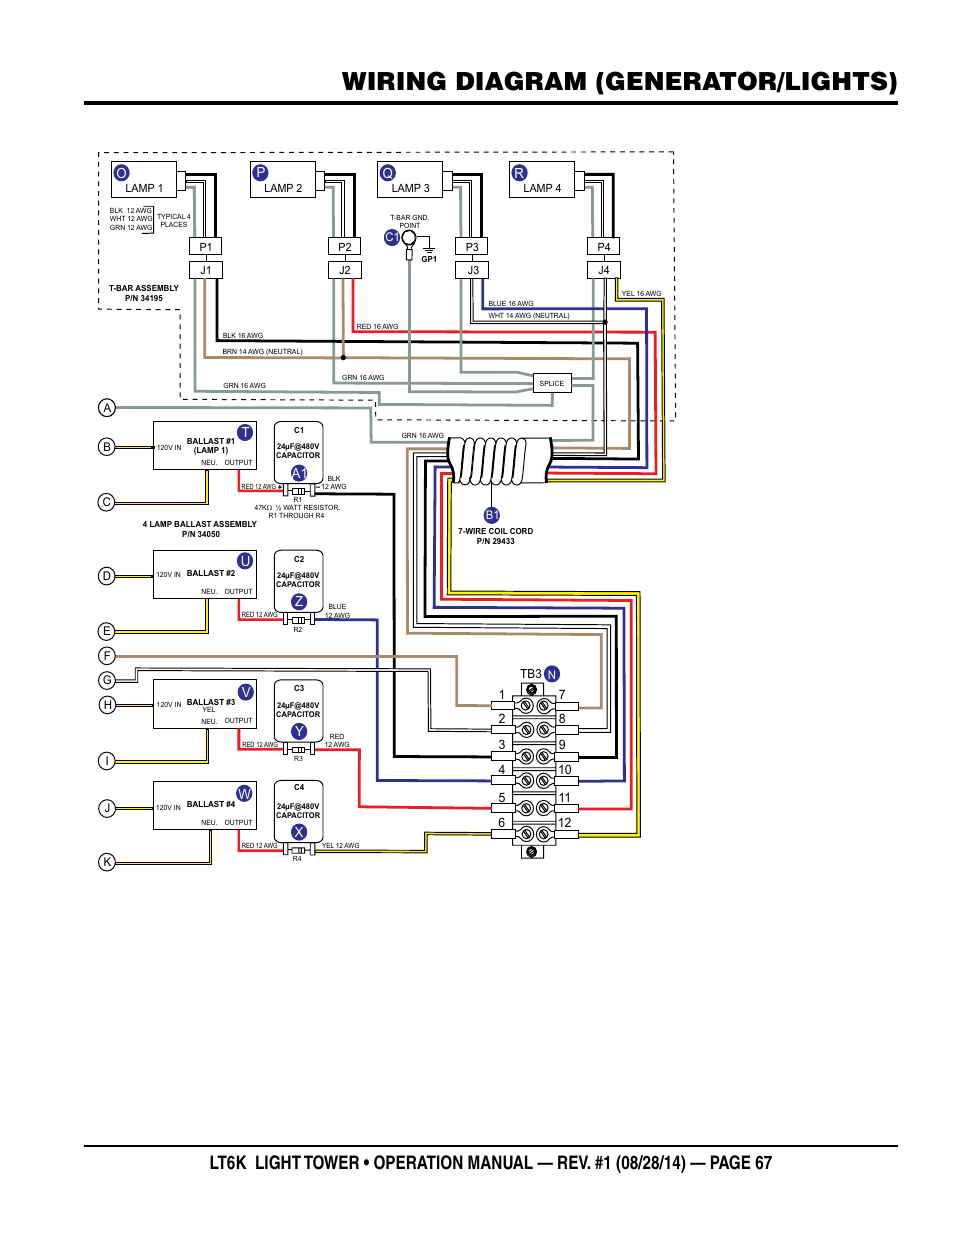 Wiring Diagram  Generator  Lights   Tu V W A1 Z